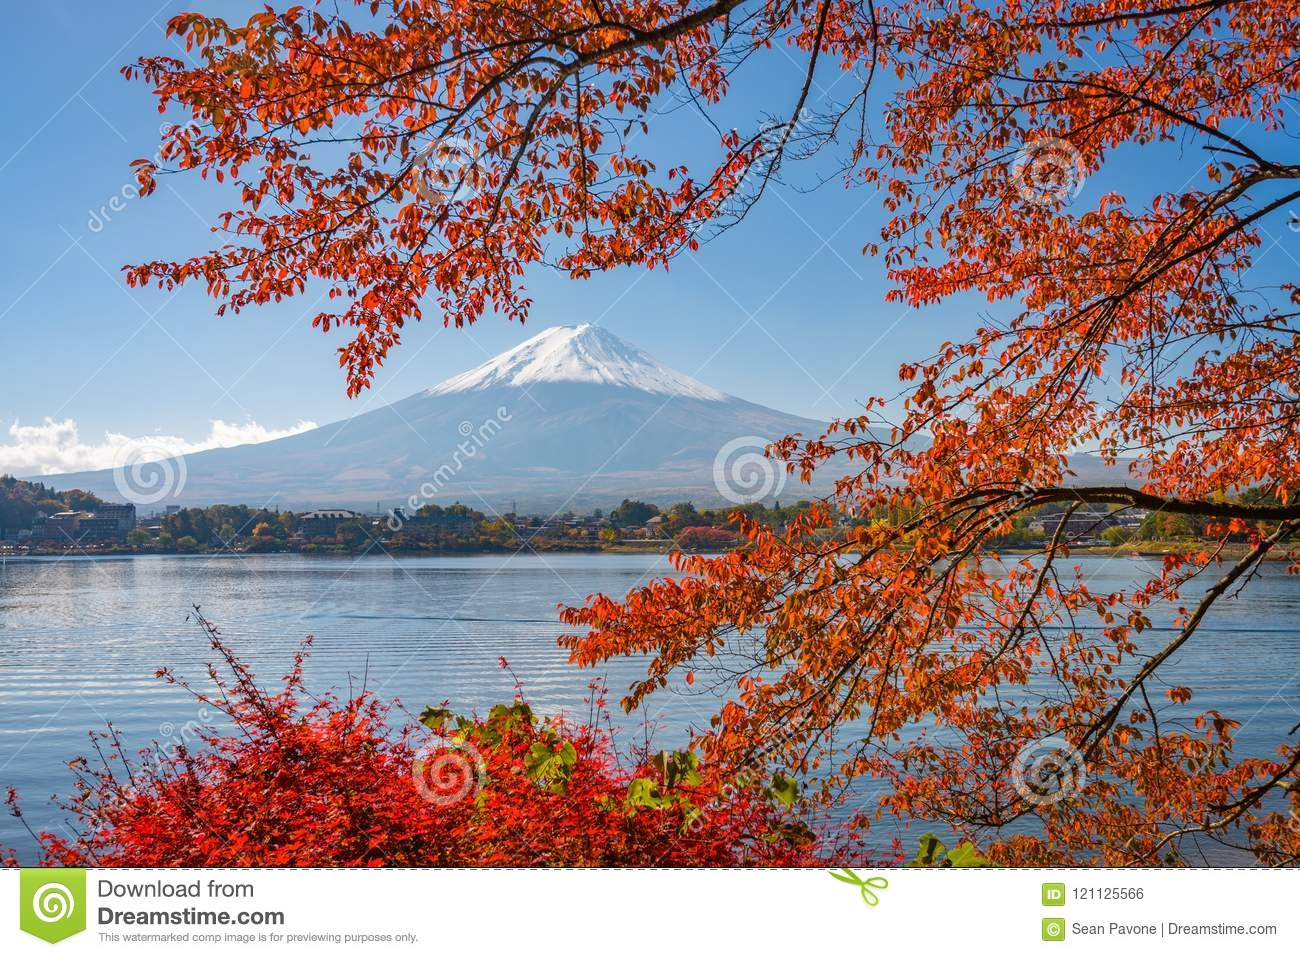 Mt. Fuji, Japan in Autumn Season